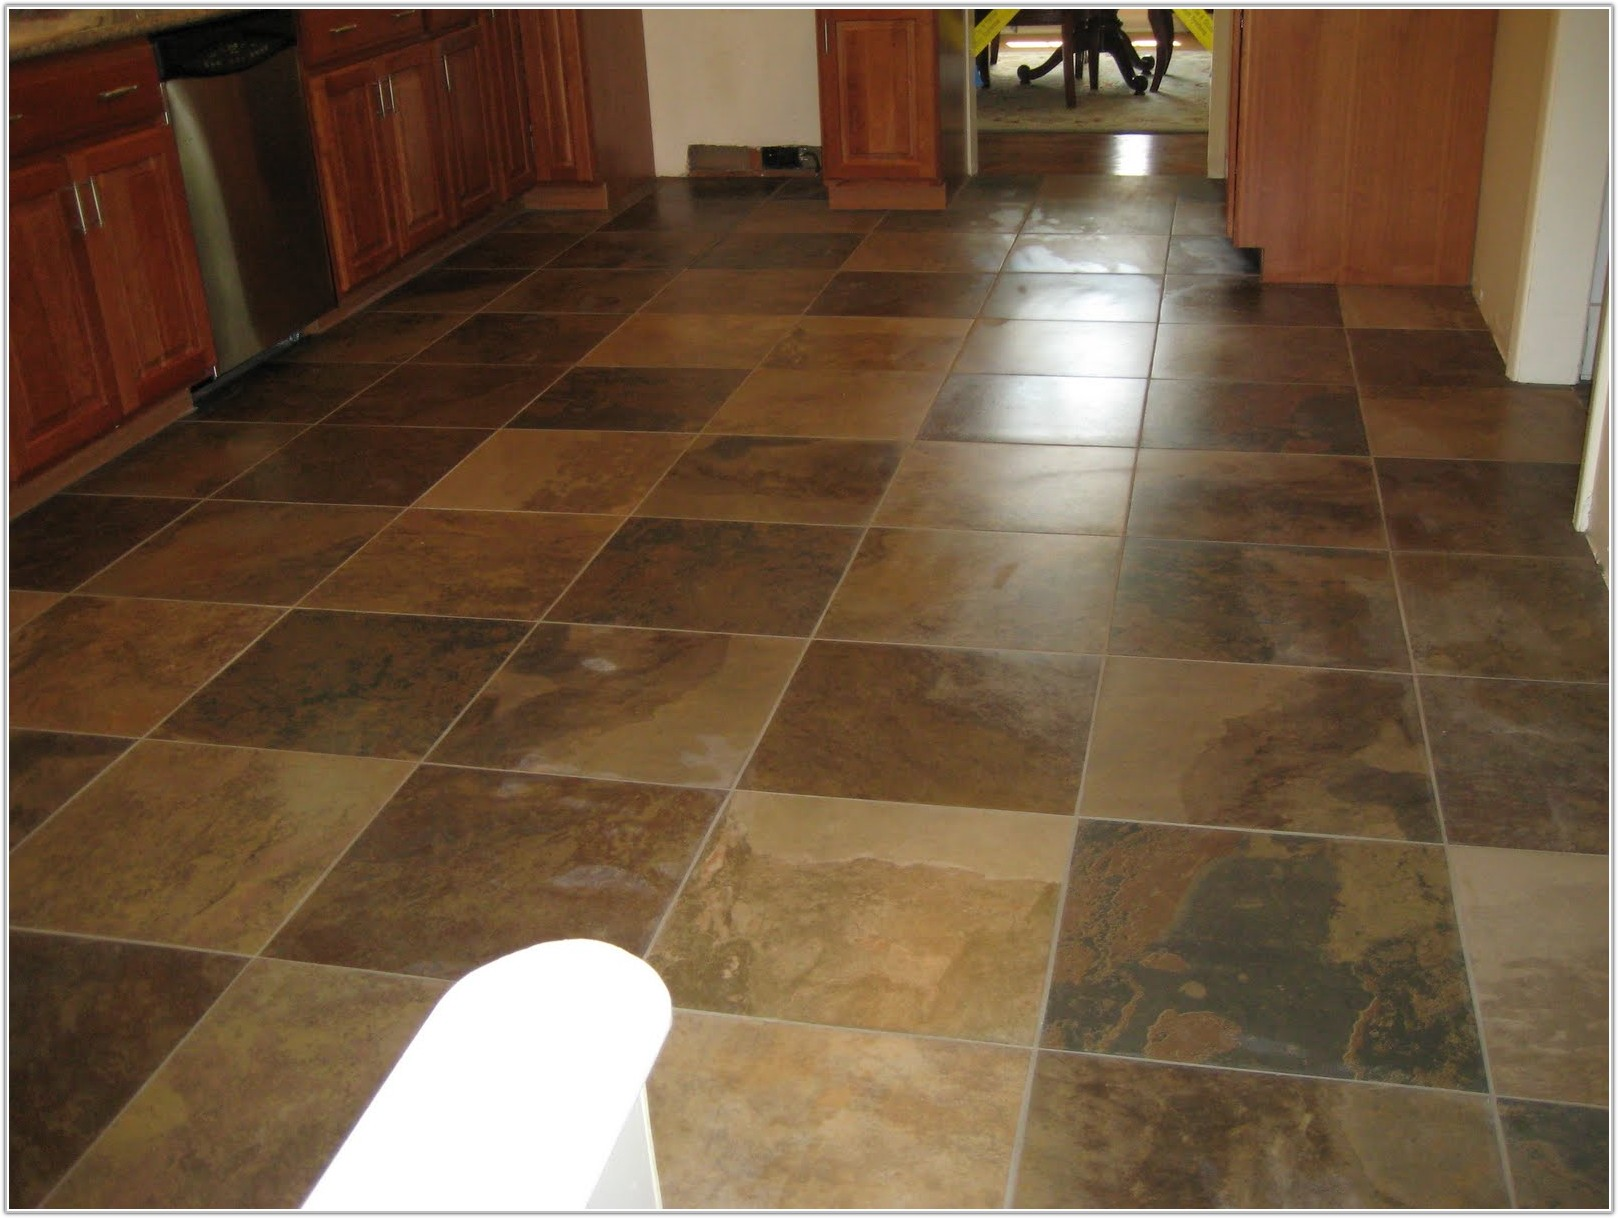 Porcelain Tile Looks Like Slate